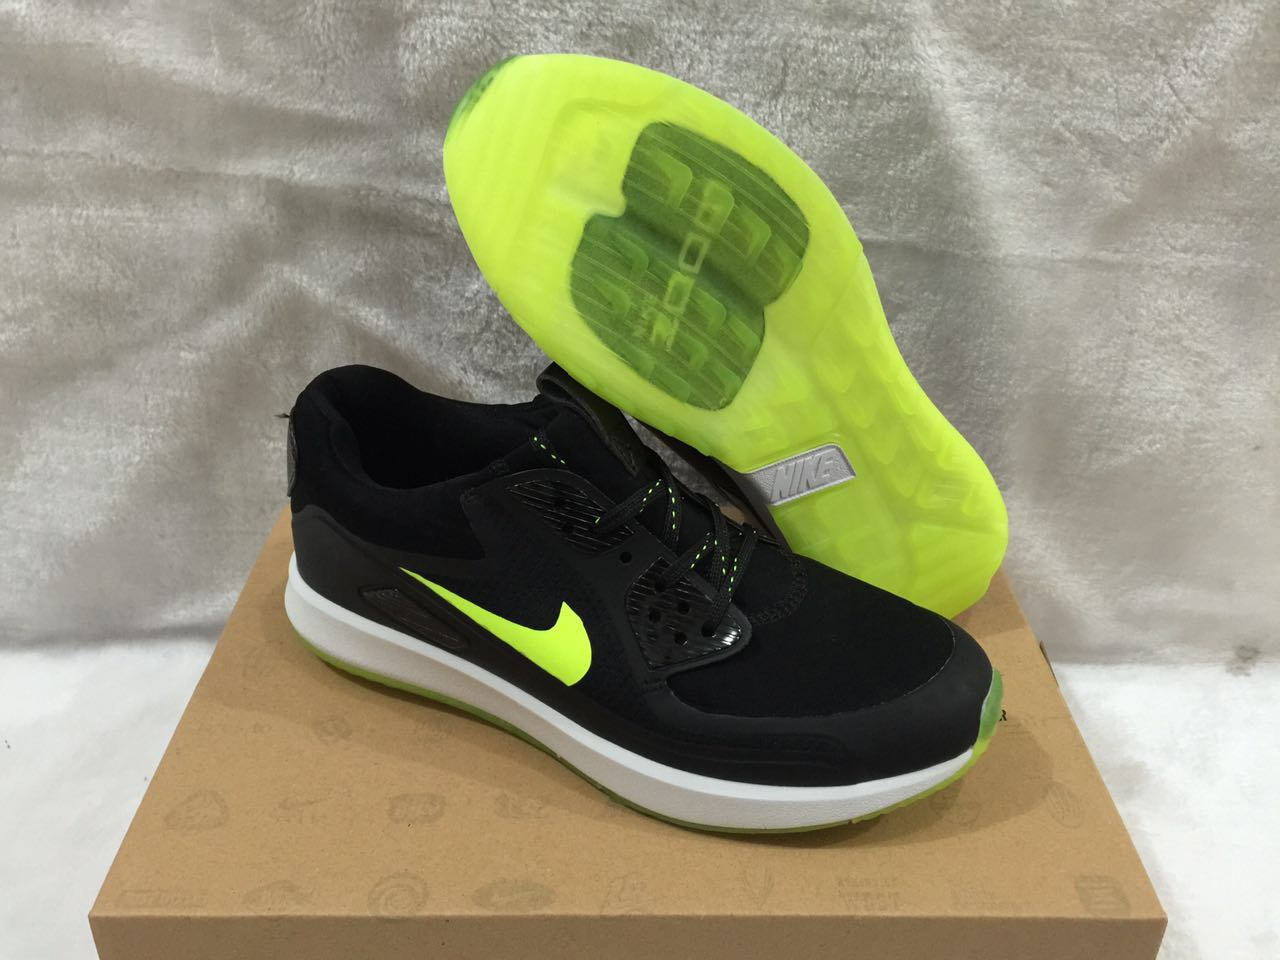 Nike Zoom 90 IT Black Fluorscent Green Shoes